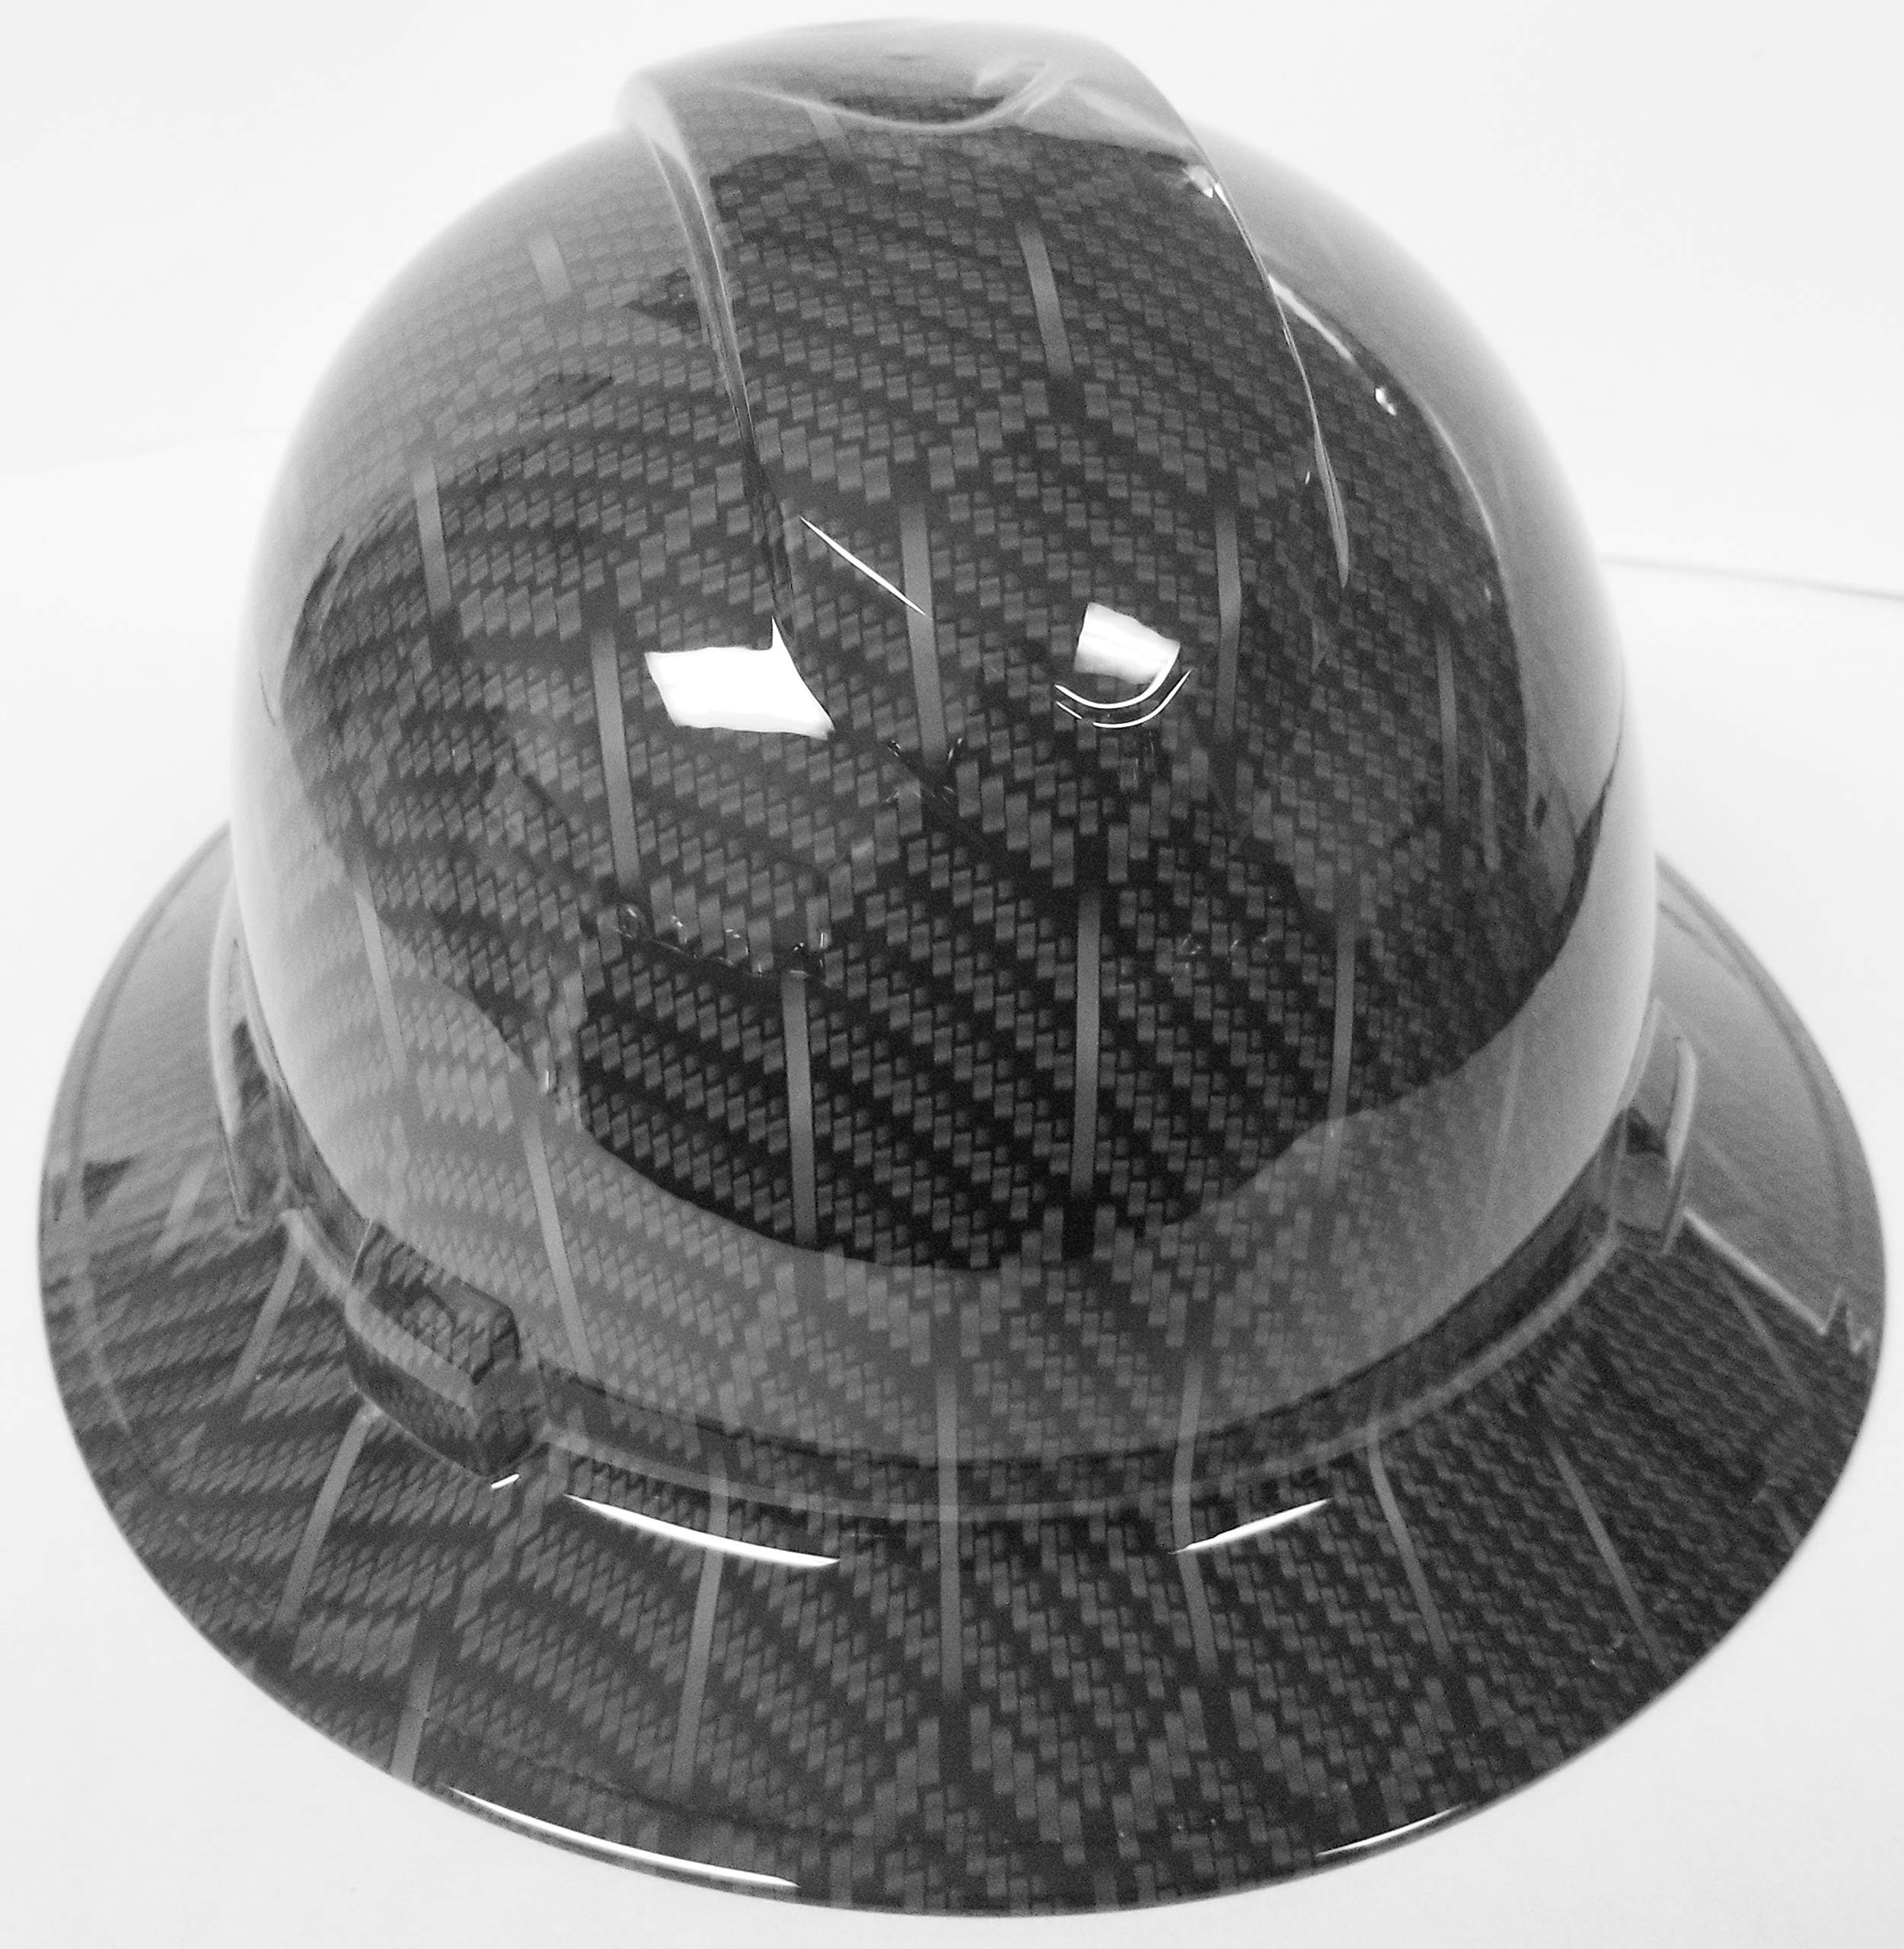 Wet Works Imaging Customized Pyramex Full Brim HEX Weave Carbon Fiber 3D Limited Hard HAT with Ratcheting Suspension Custom LIDS Crazy Sick Construction PPE by Wet Works Imaging (Image #1)